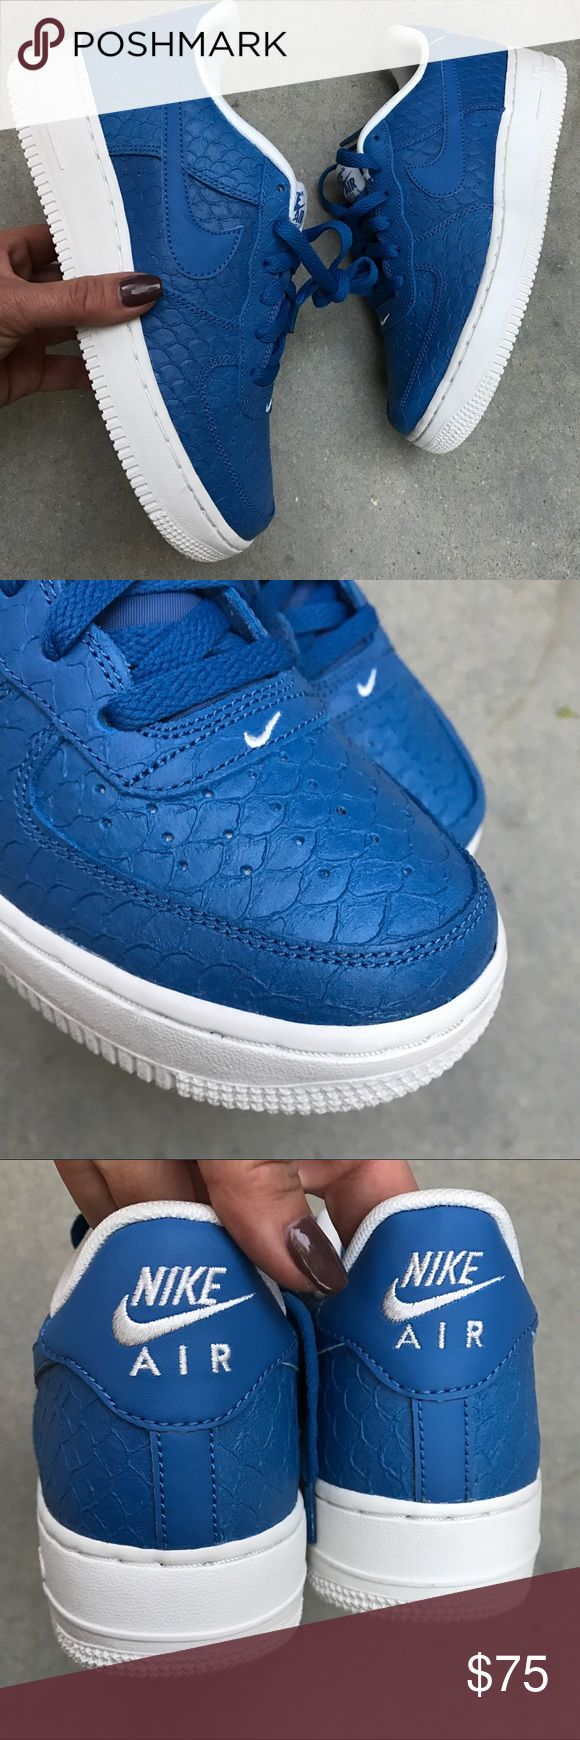 NEW | NIKE AIR FORCE ONE SZ 6 youth UNISEX New never worn  NIKE AIR FORCE ONE PREMIUM  Ships same or next day, NO ORIGINAL BOX, smoke free home.  PRICE IS FIRM. 100% authentic purchased directly from NIKE  Nike Shoes Sneakers